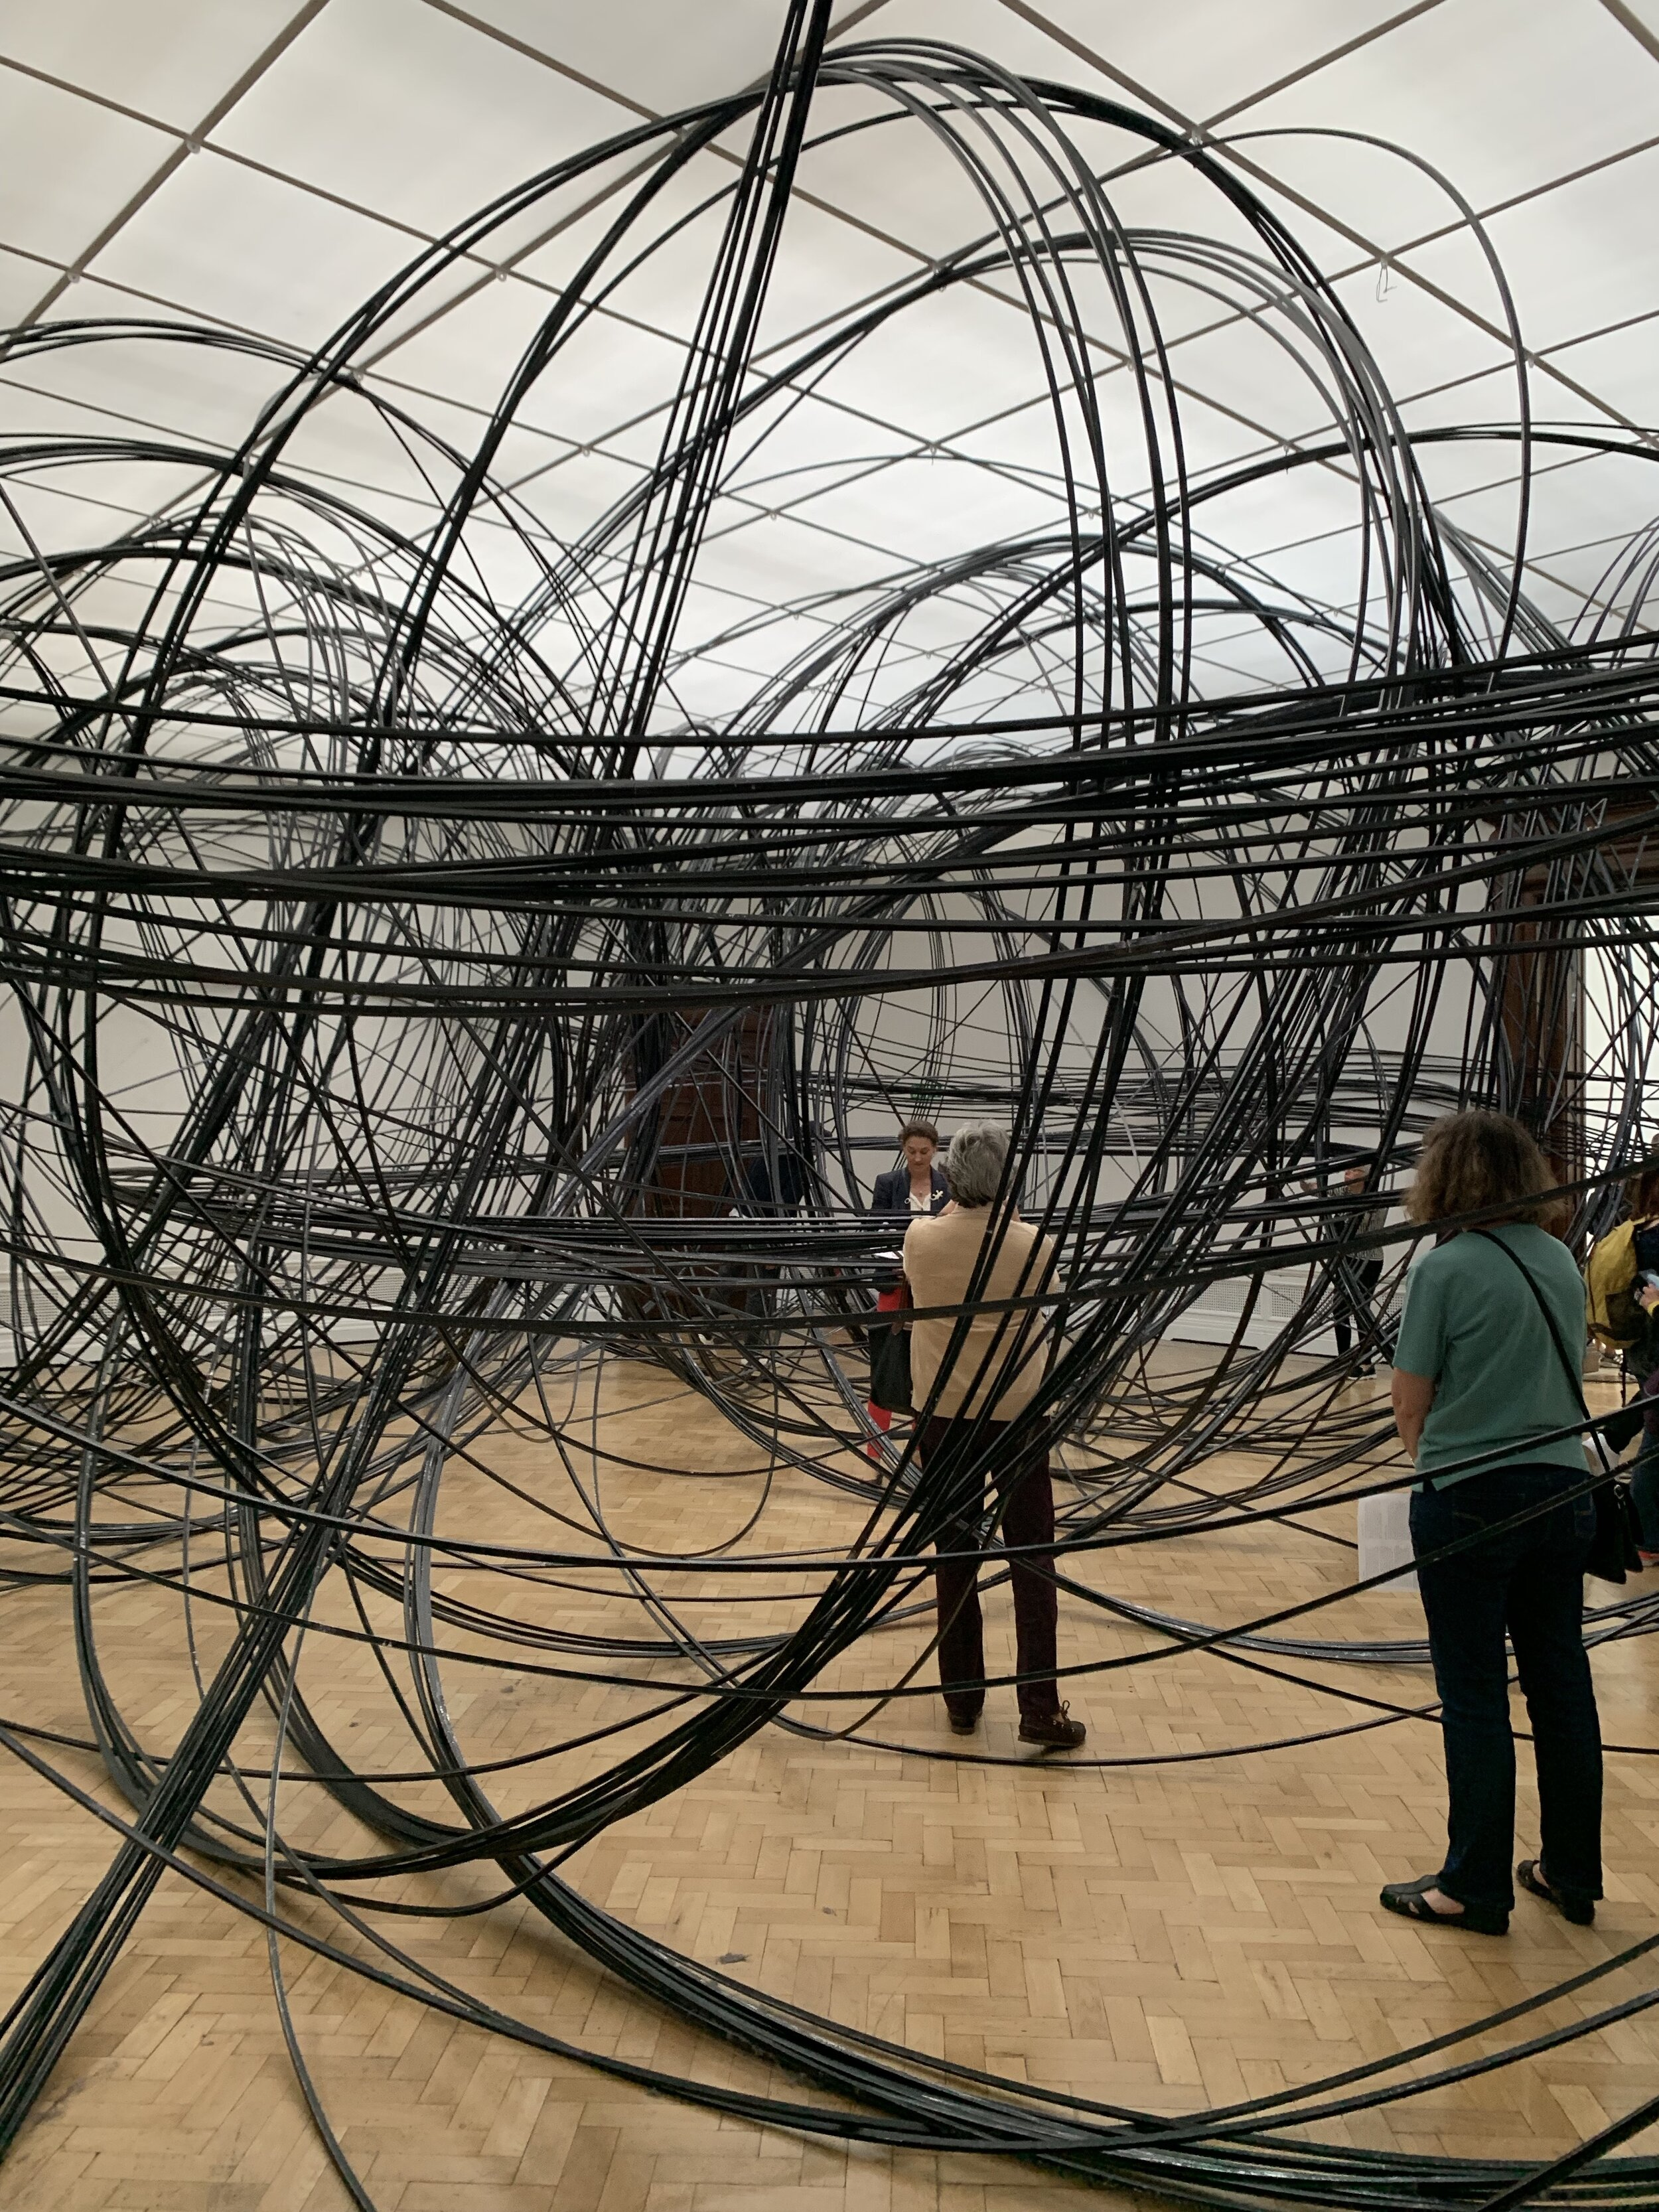 Gormley describes the mass of coiled aluminium tube that makes up Clearing VII as 'drawing in space'